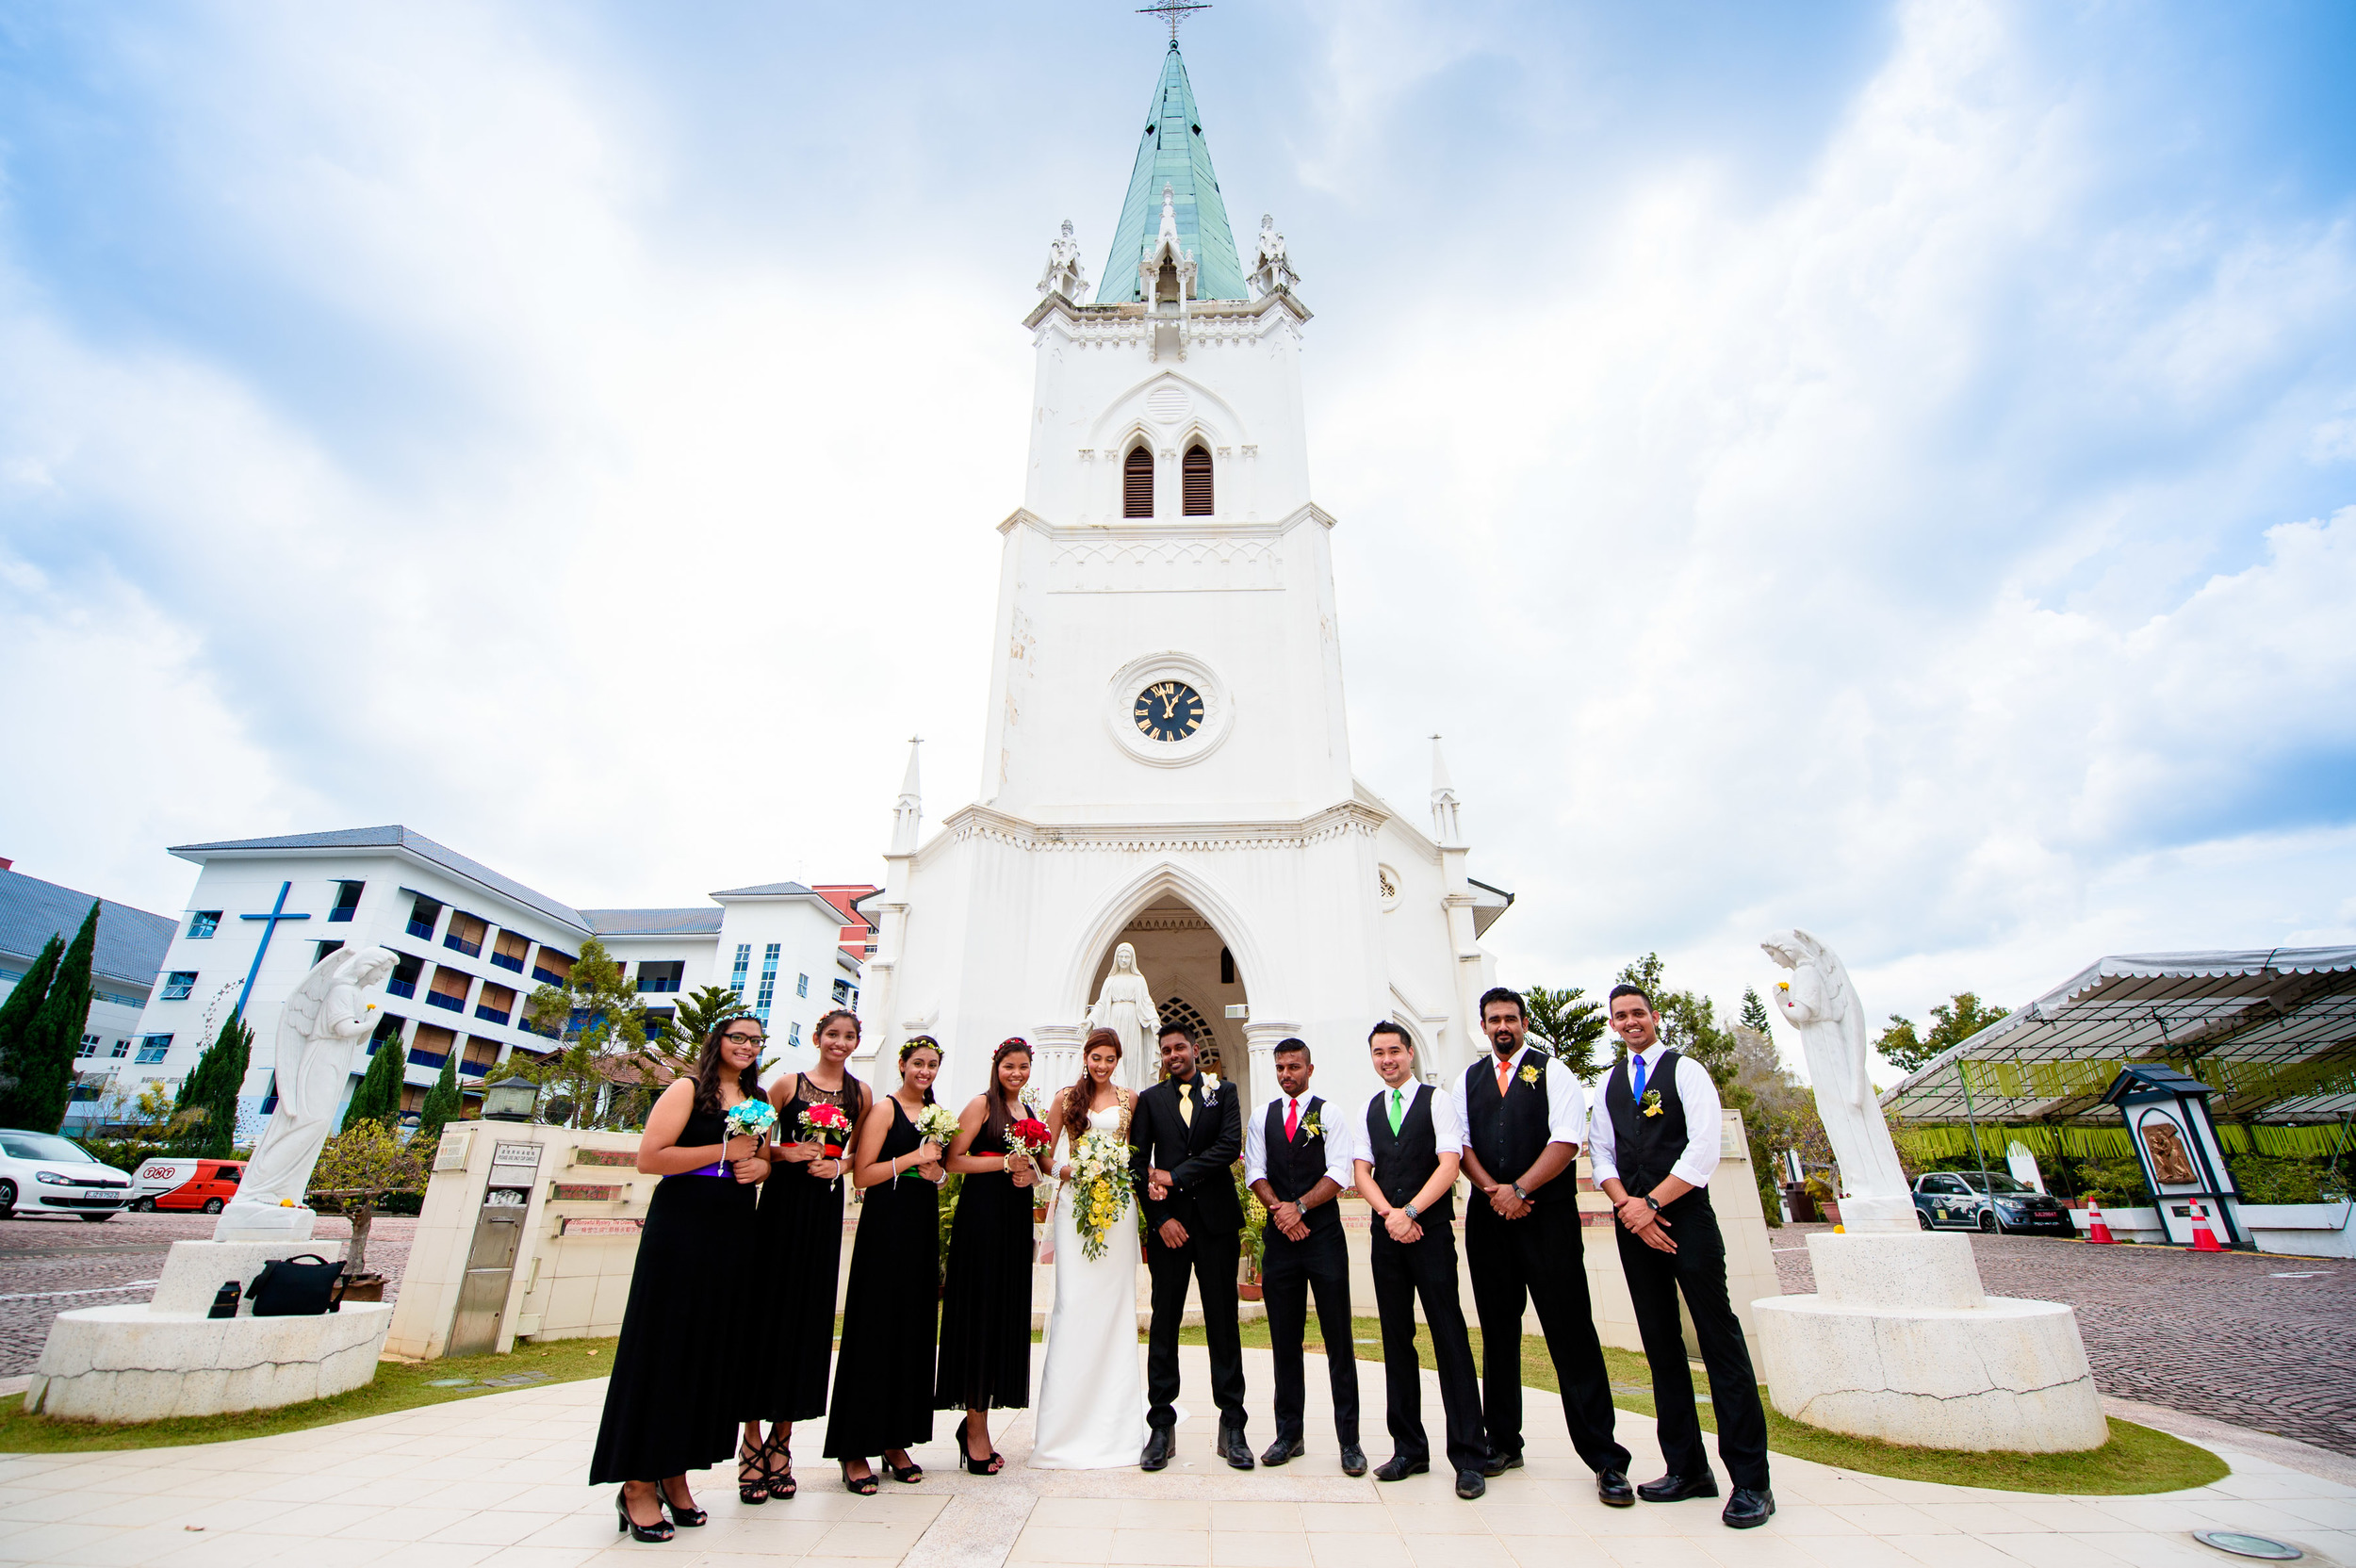 church wedding couple with bestmen & bridesmaids